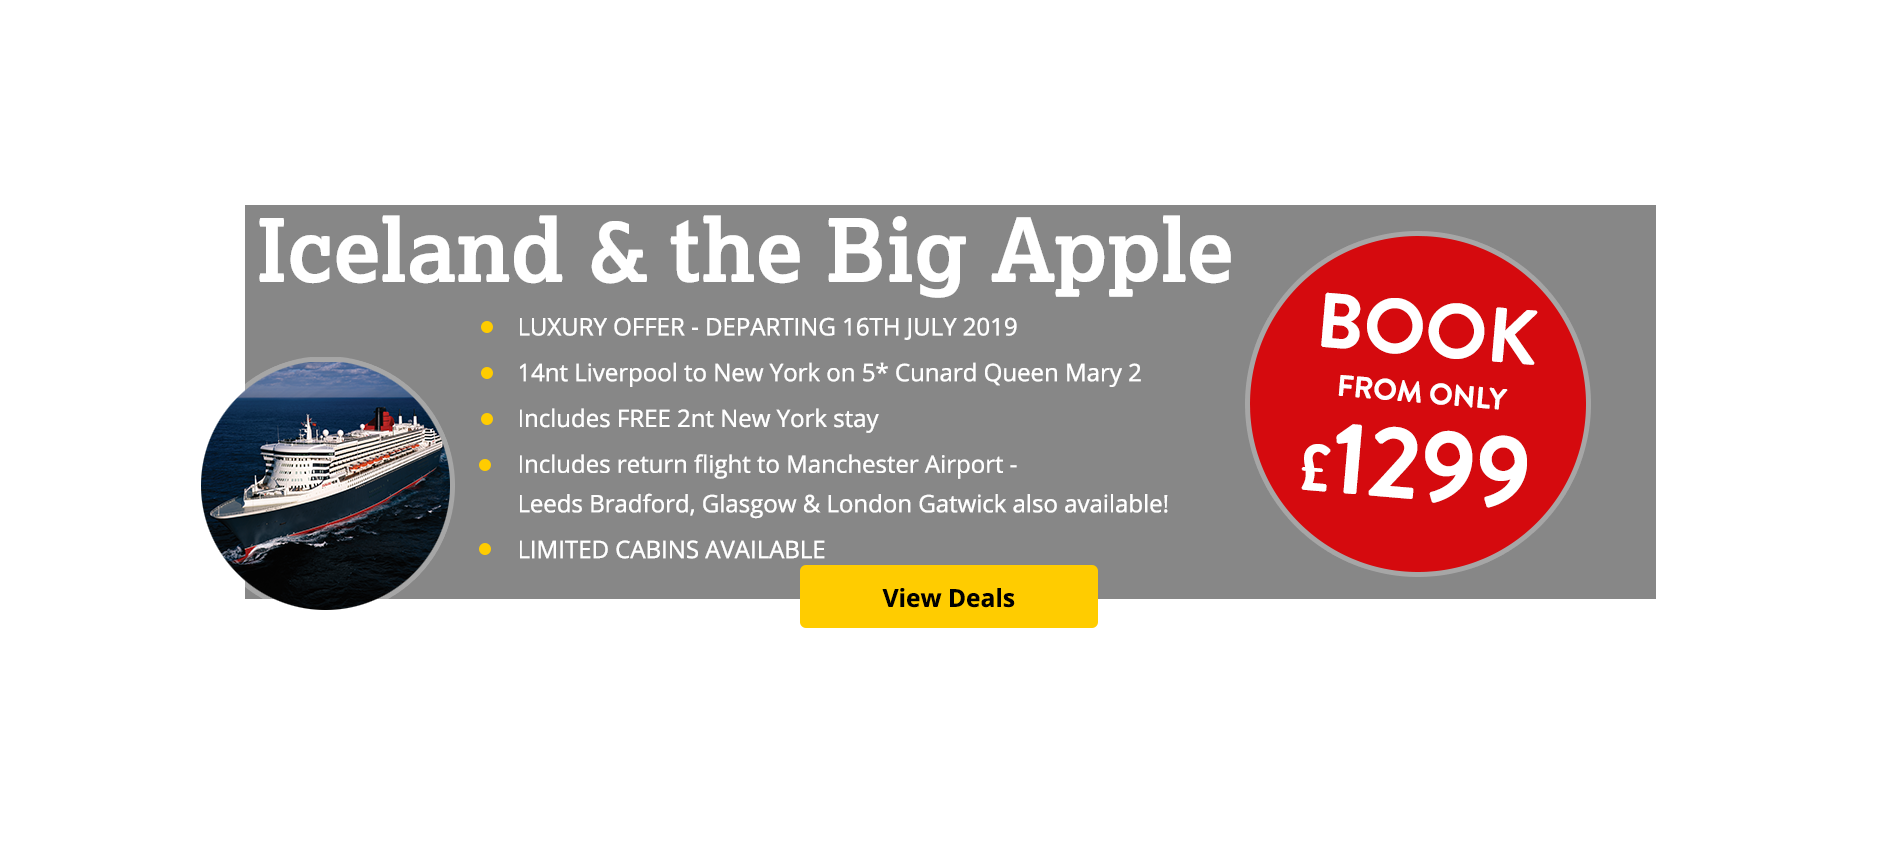 Take the 14nt Liverpool to New York voyage aboard the 5* Cunard Queen Mary 2! Limited cabins available!